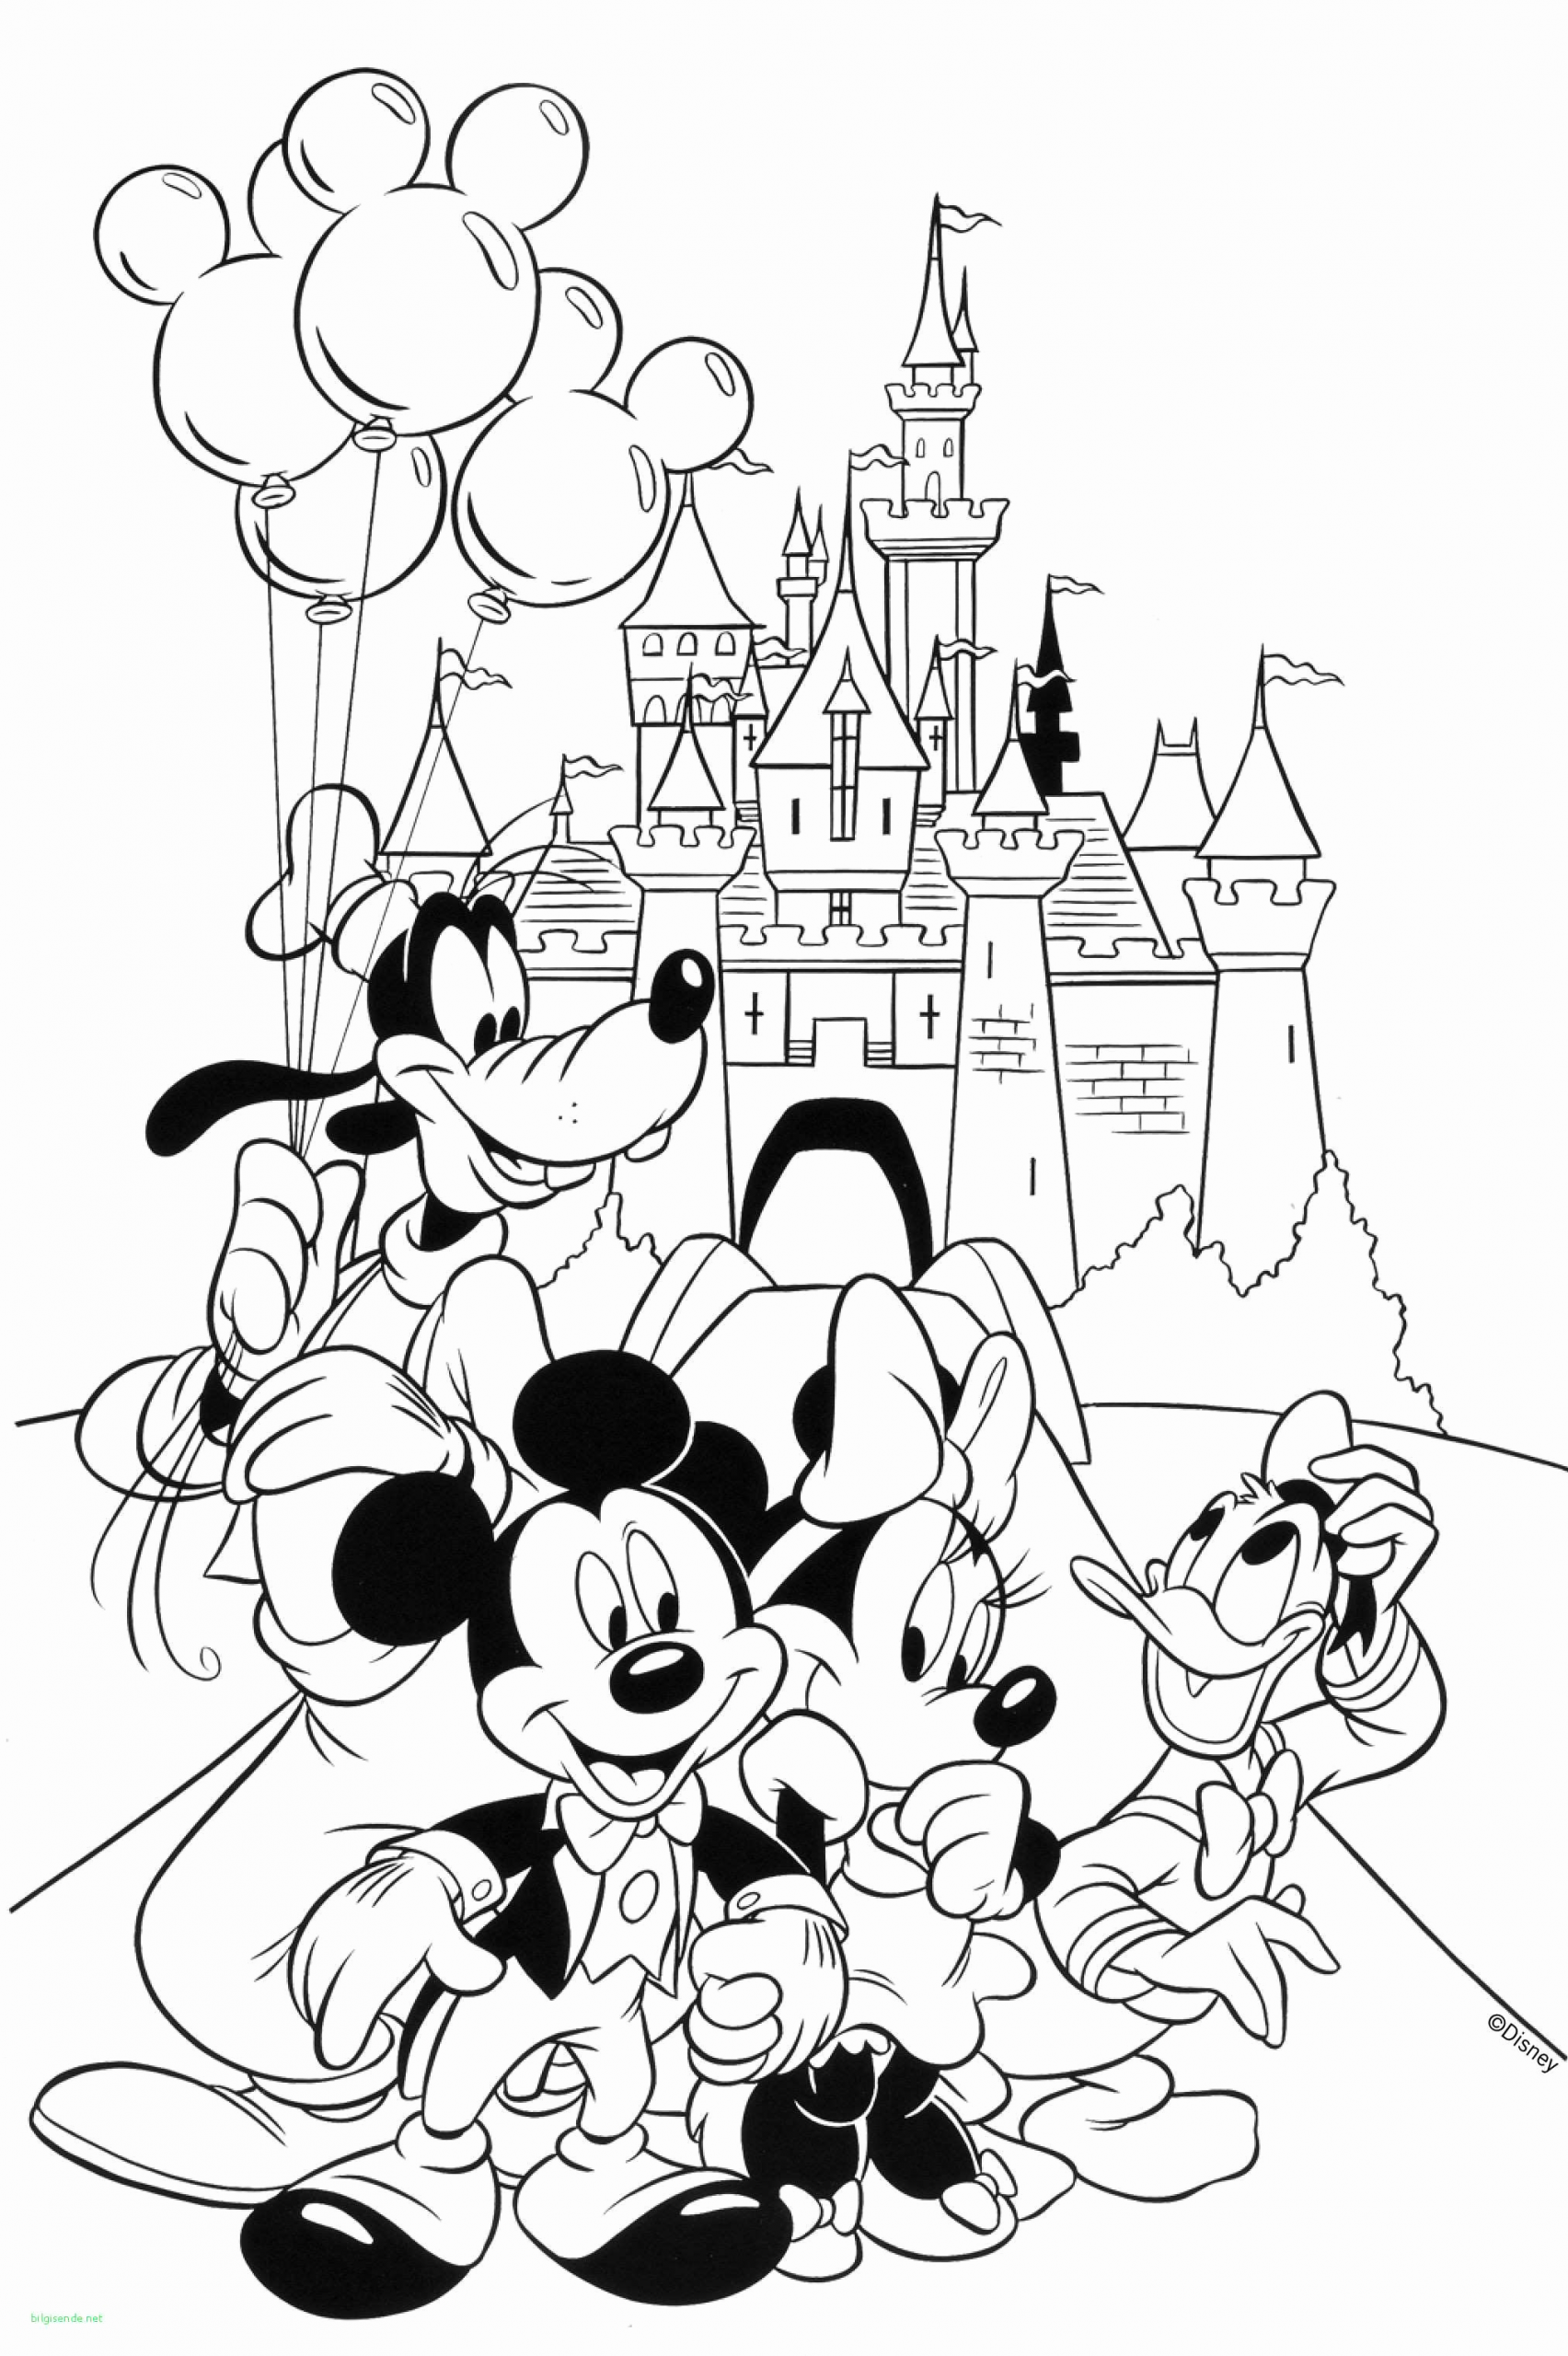 Coloring Pages For Kids Disney Characters In Cartoon Disney Coloring Pages Cartoon Coloring Pages Mickey Mouse Coloring Pages